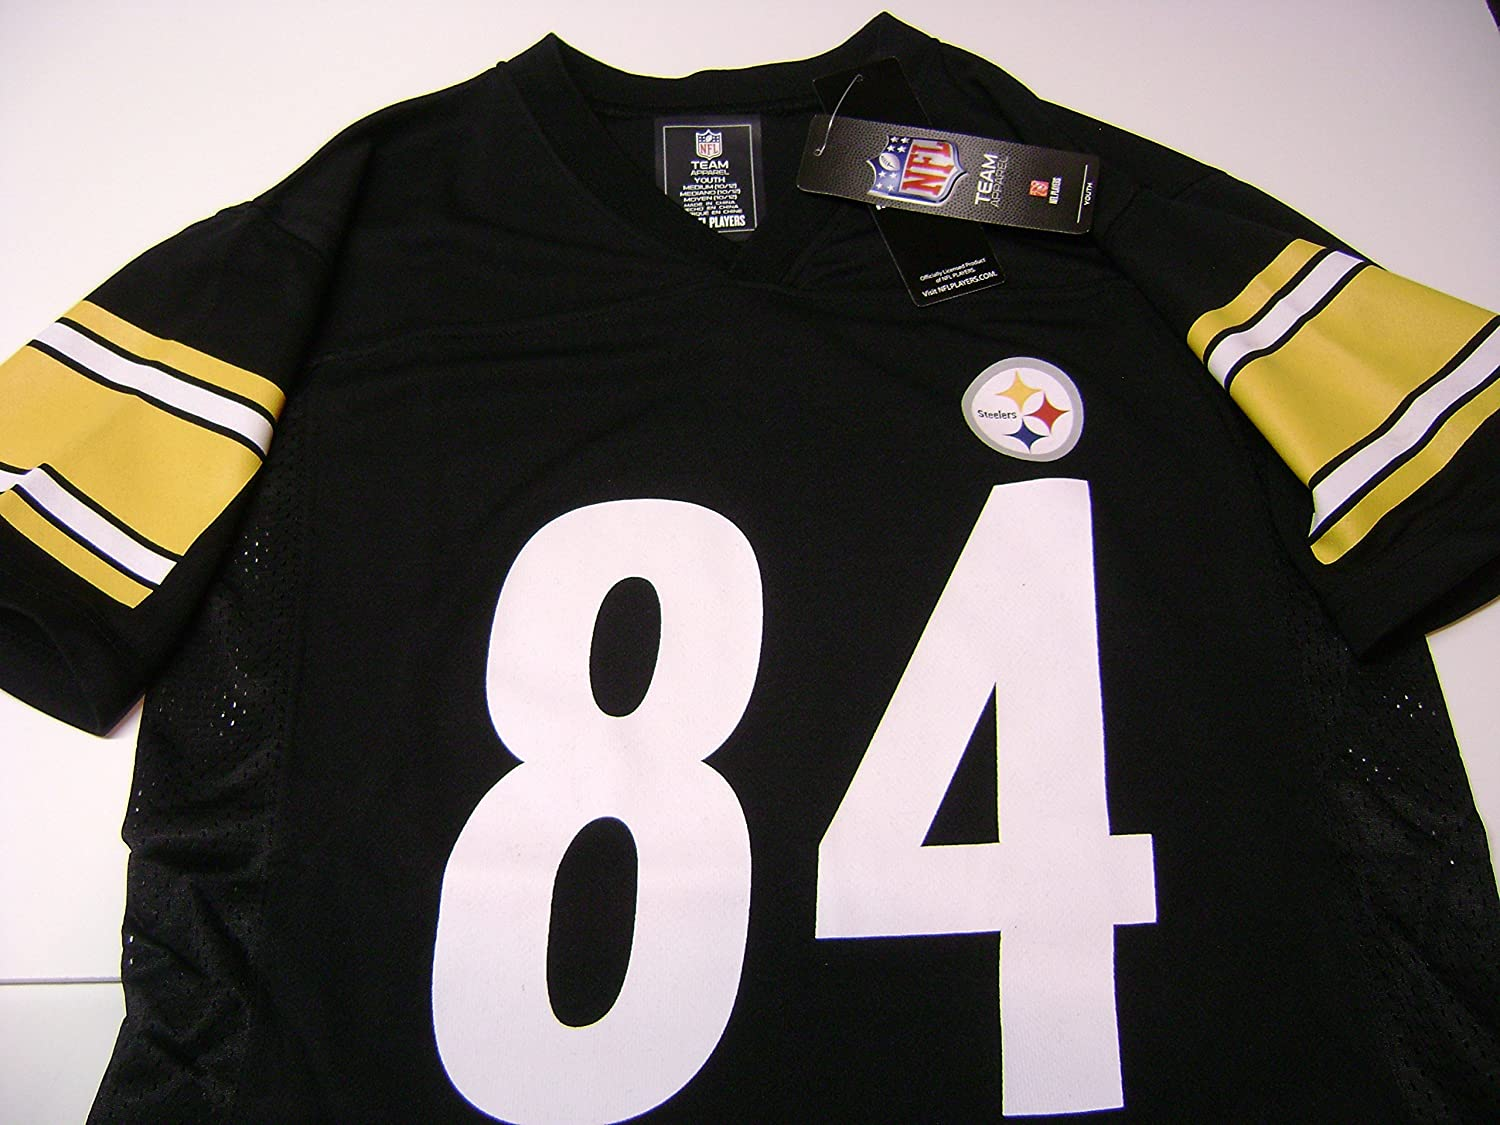 ba89682b7 Amazon.com   Outerstuff Antonio Brown Pittsburgh Steelers Youth Black Jersey    Football Jerseys   Sports   Outdoors